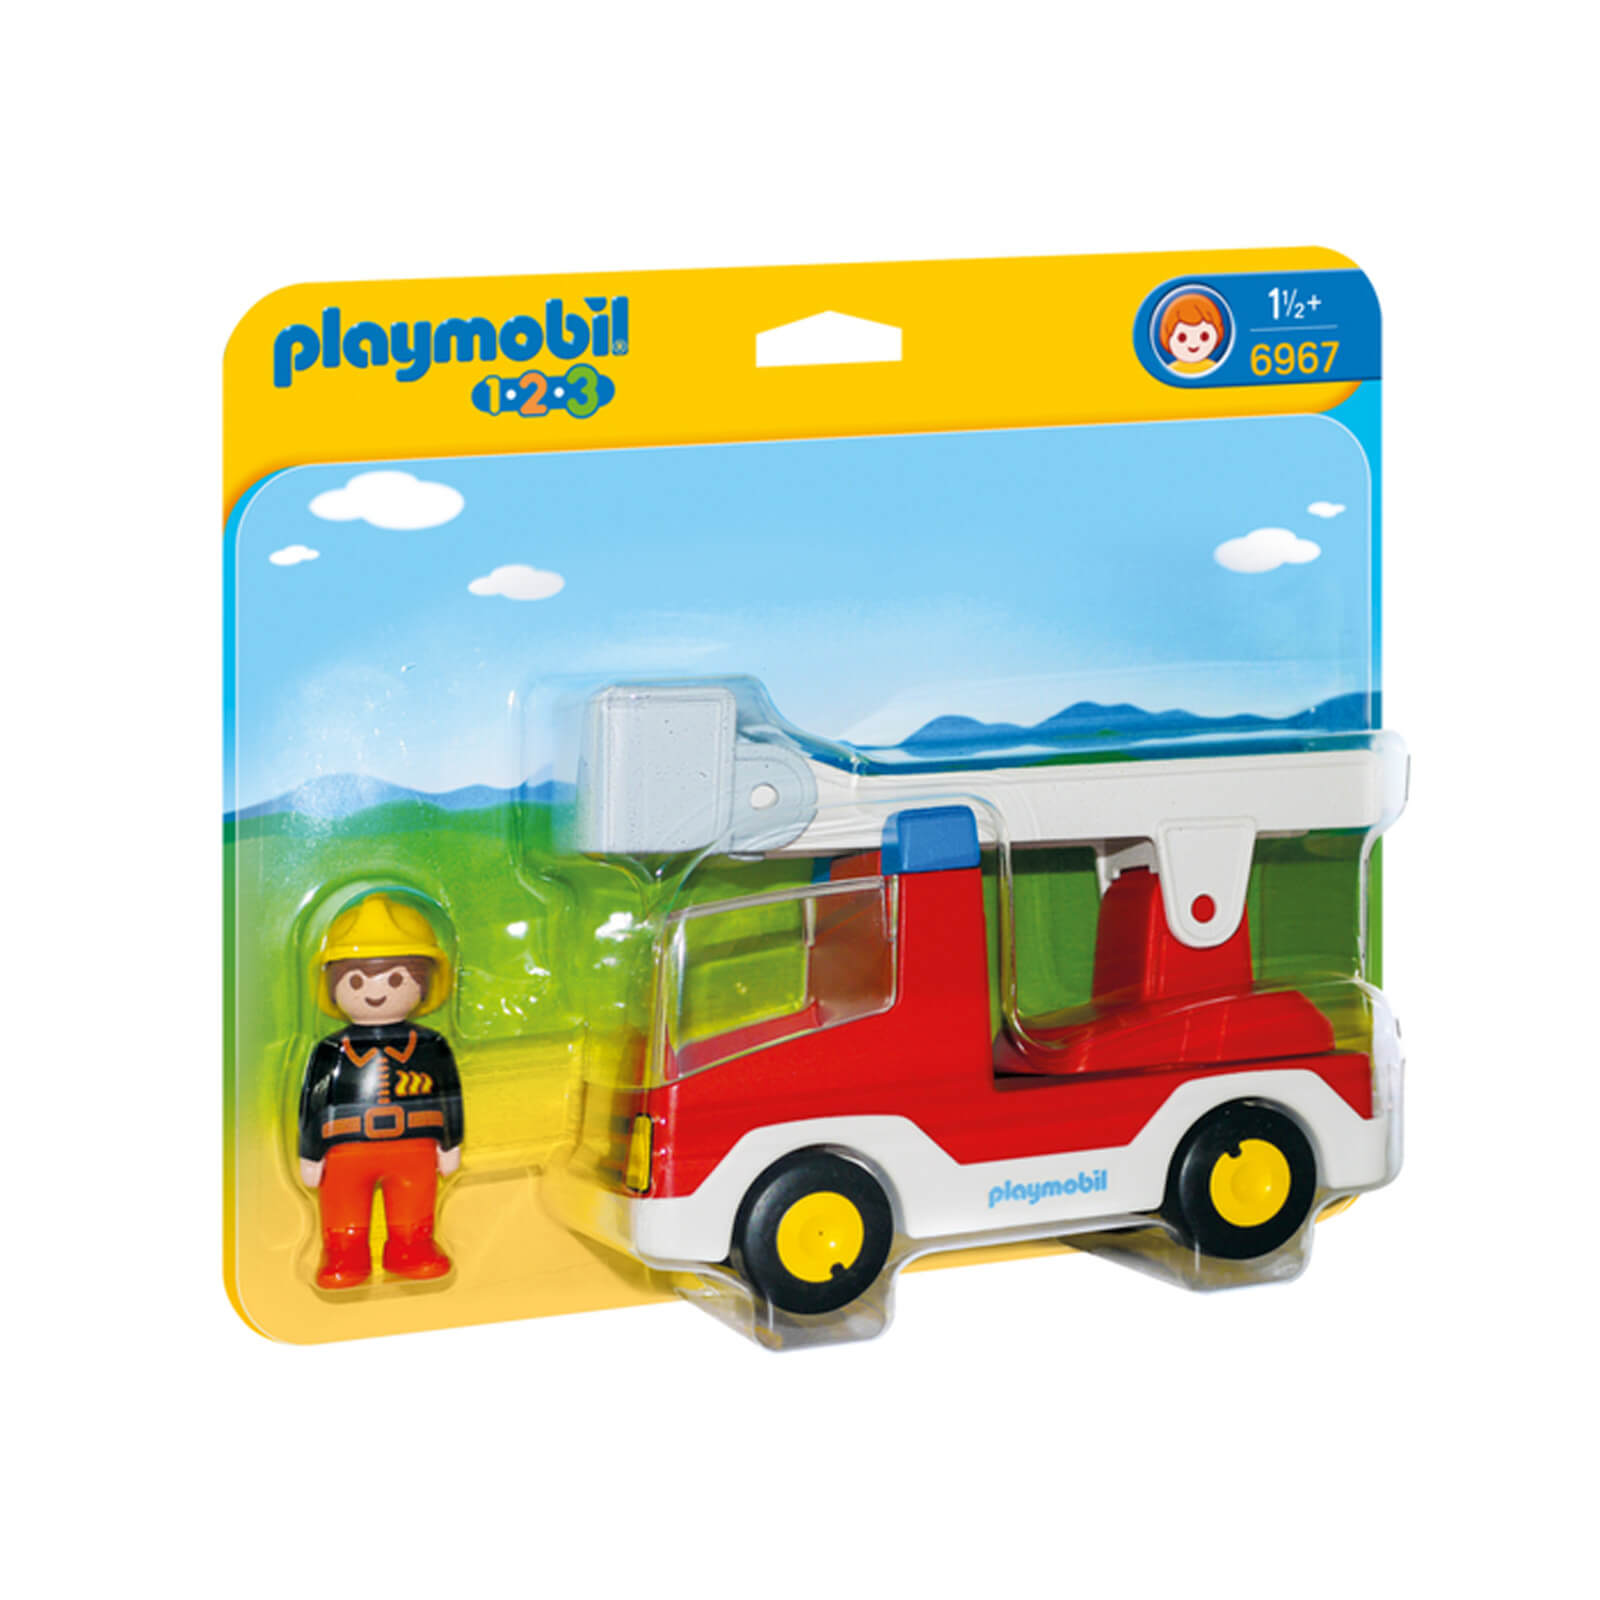 Playmobil 1.2.3 Ladder Unit Fire Truck (6967)